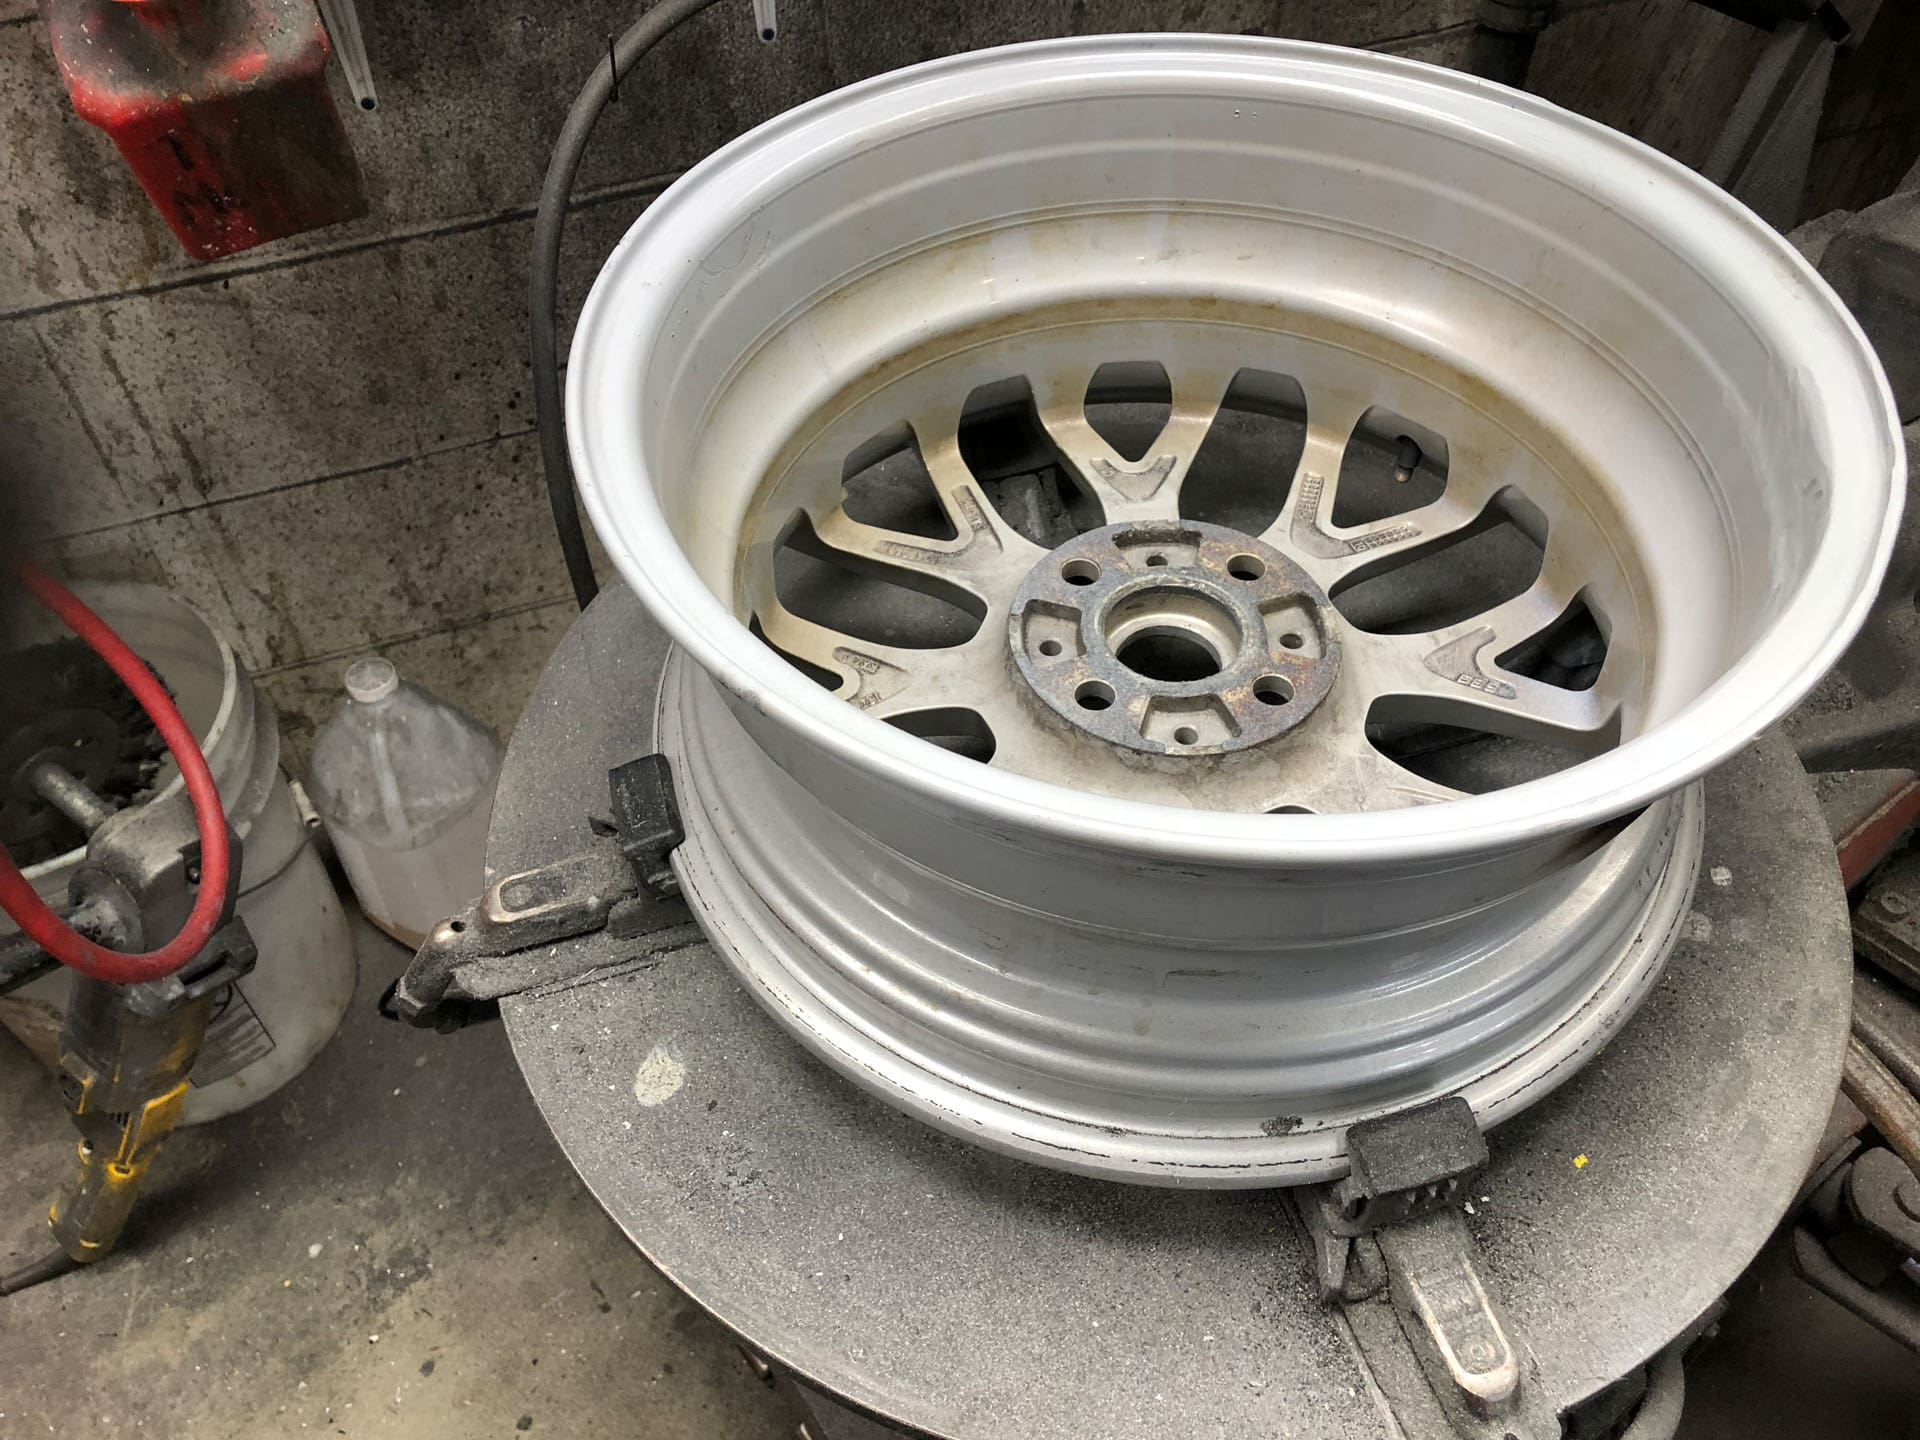 Bent Rim Repaired image